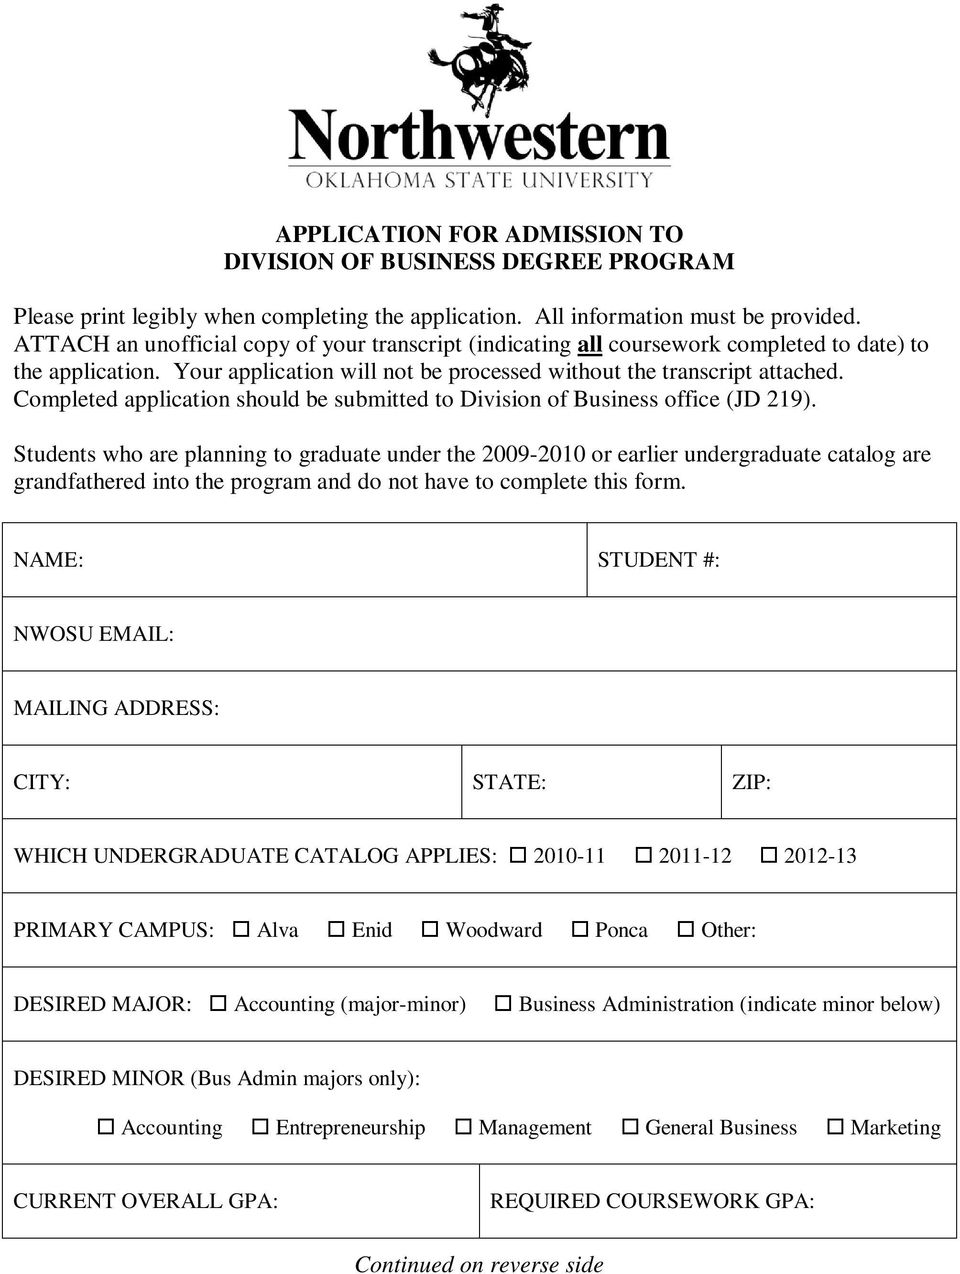 Completed application should be submitted to Division of Business office (JD 219).